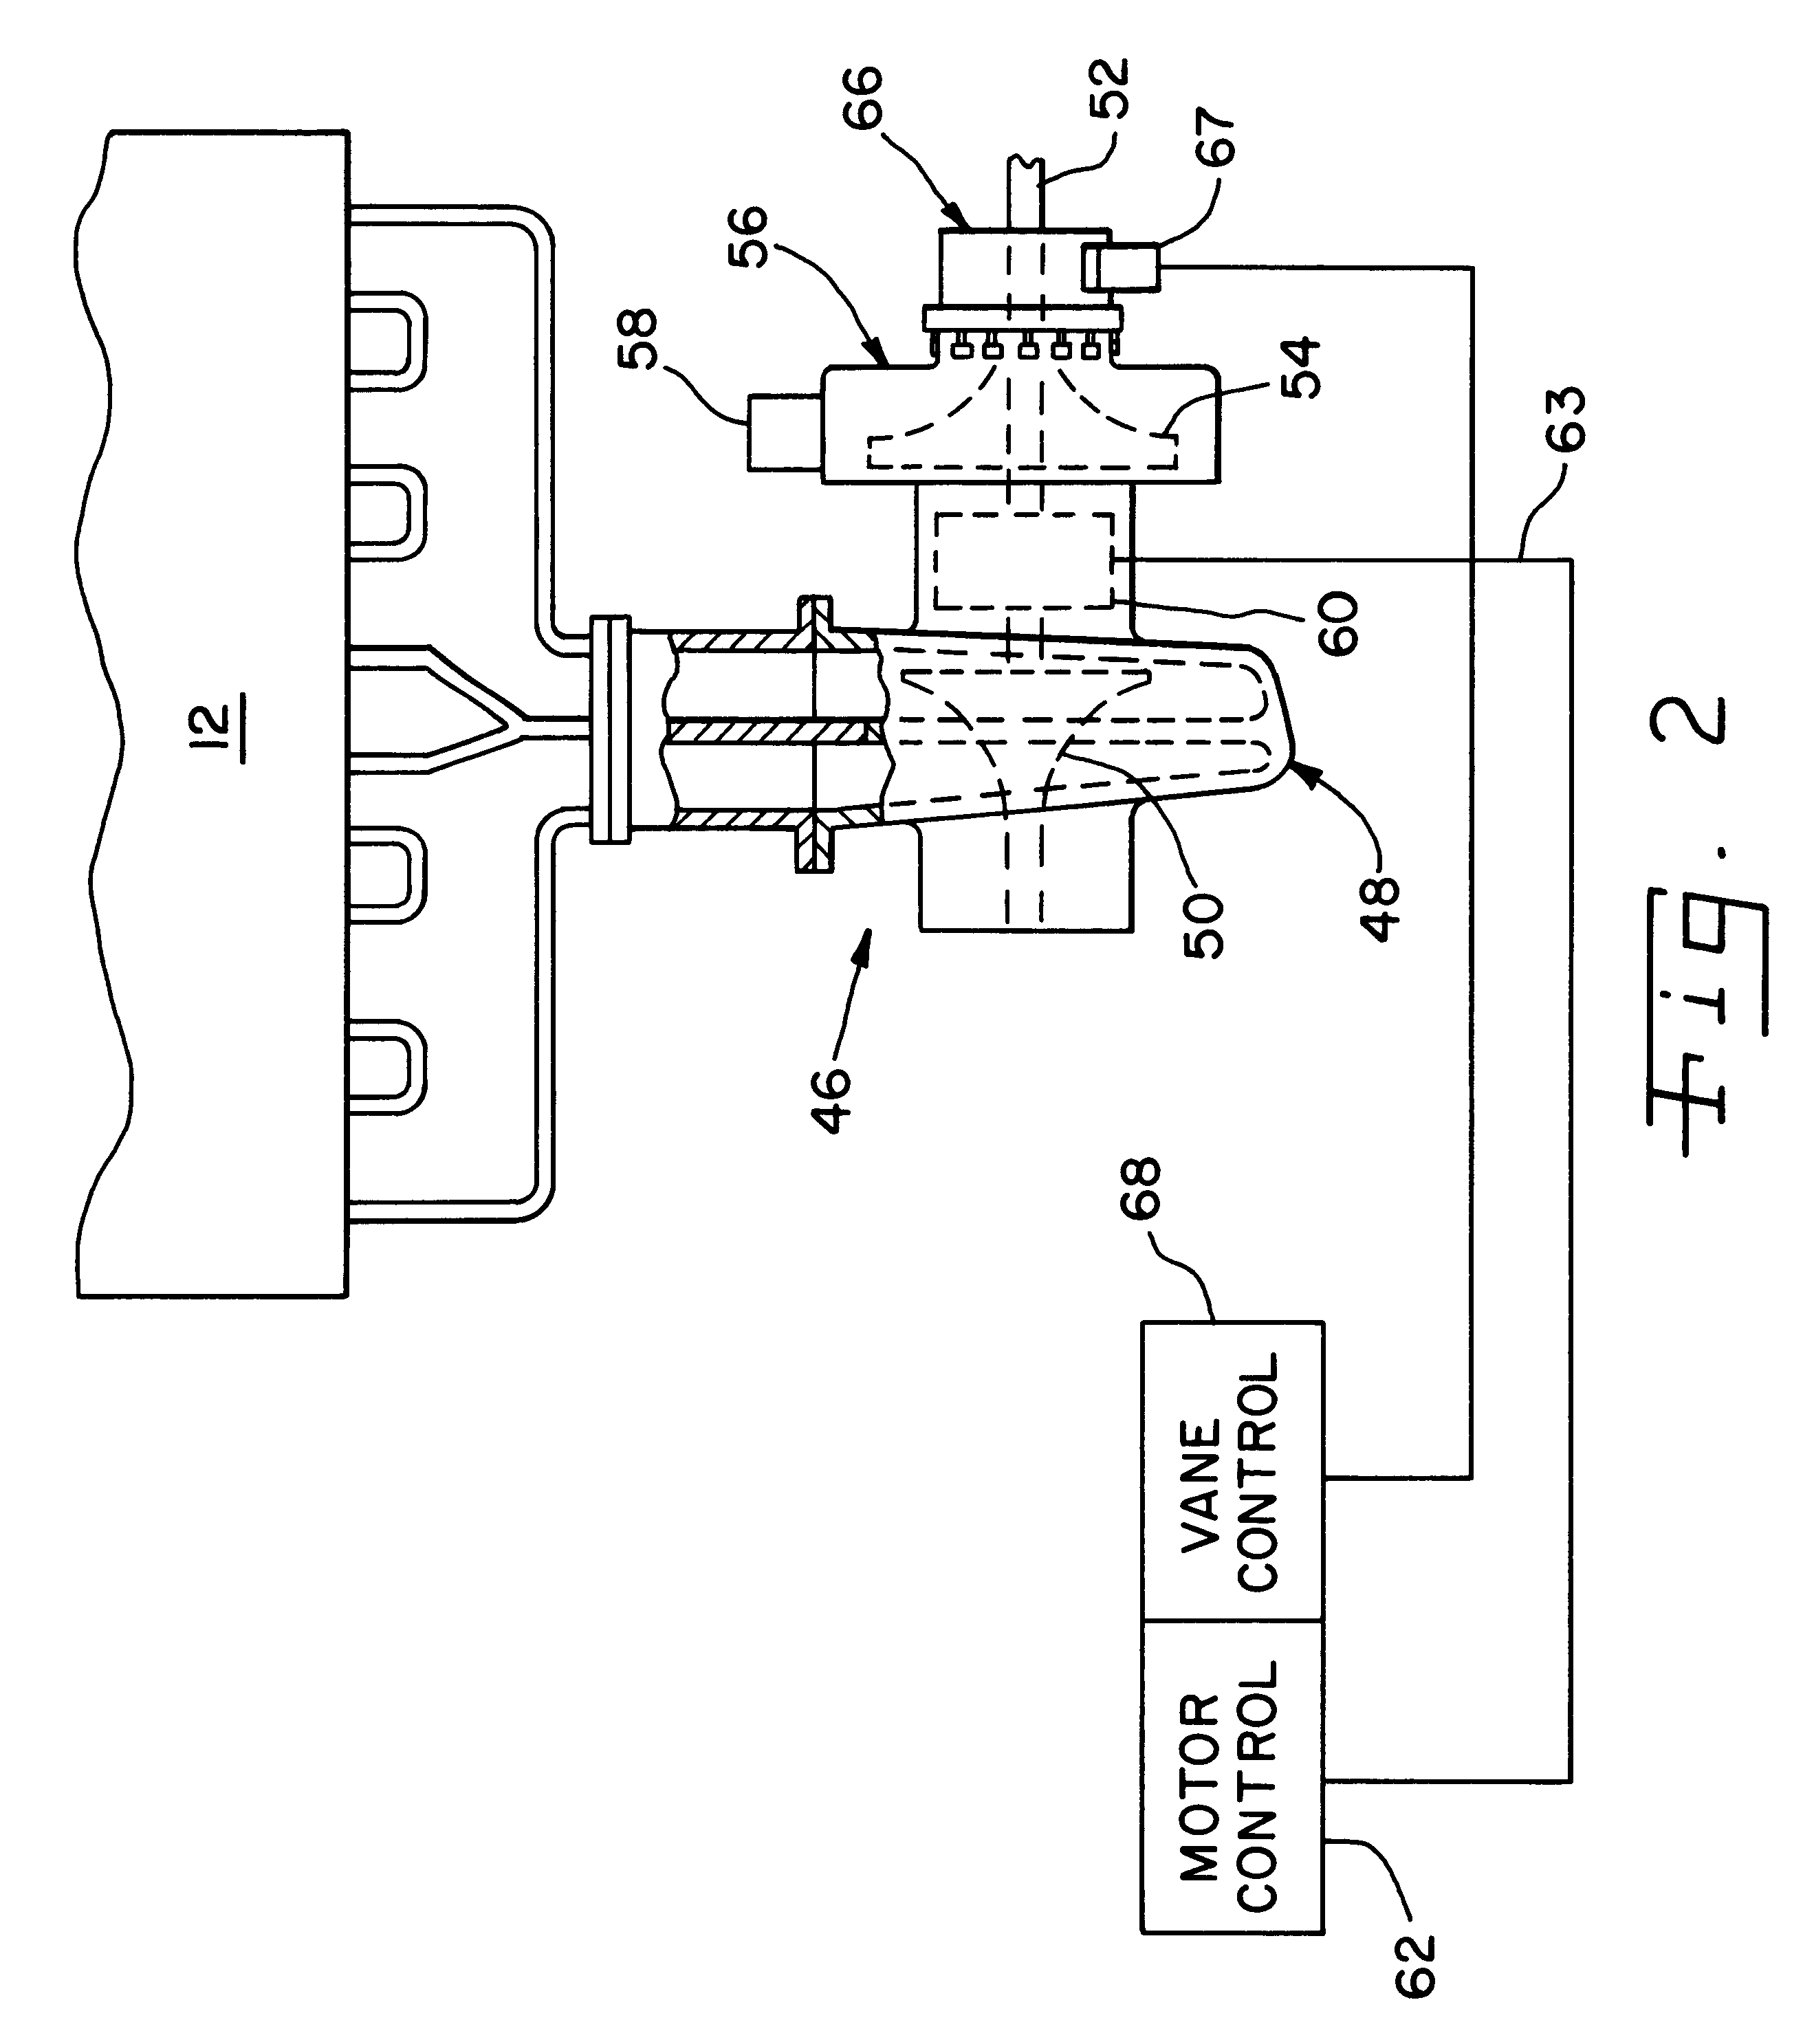 Electric Turbocharger Patents: Motor-assisted Variable Geometry